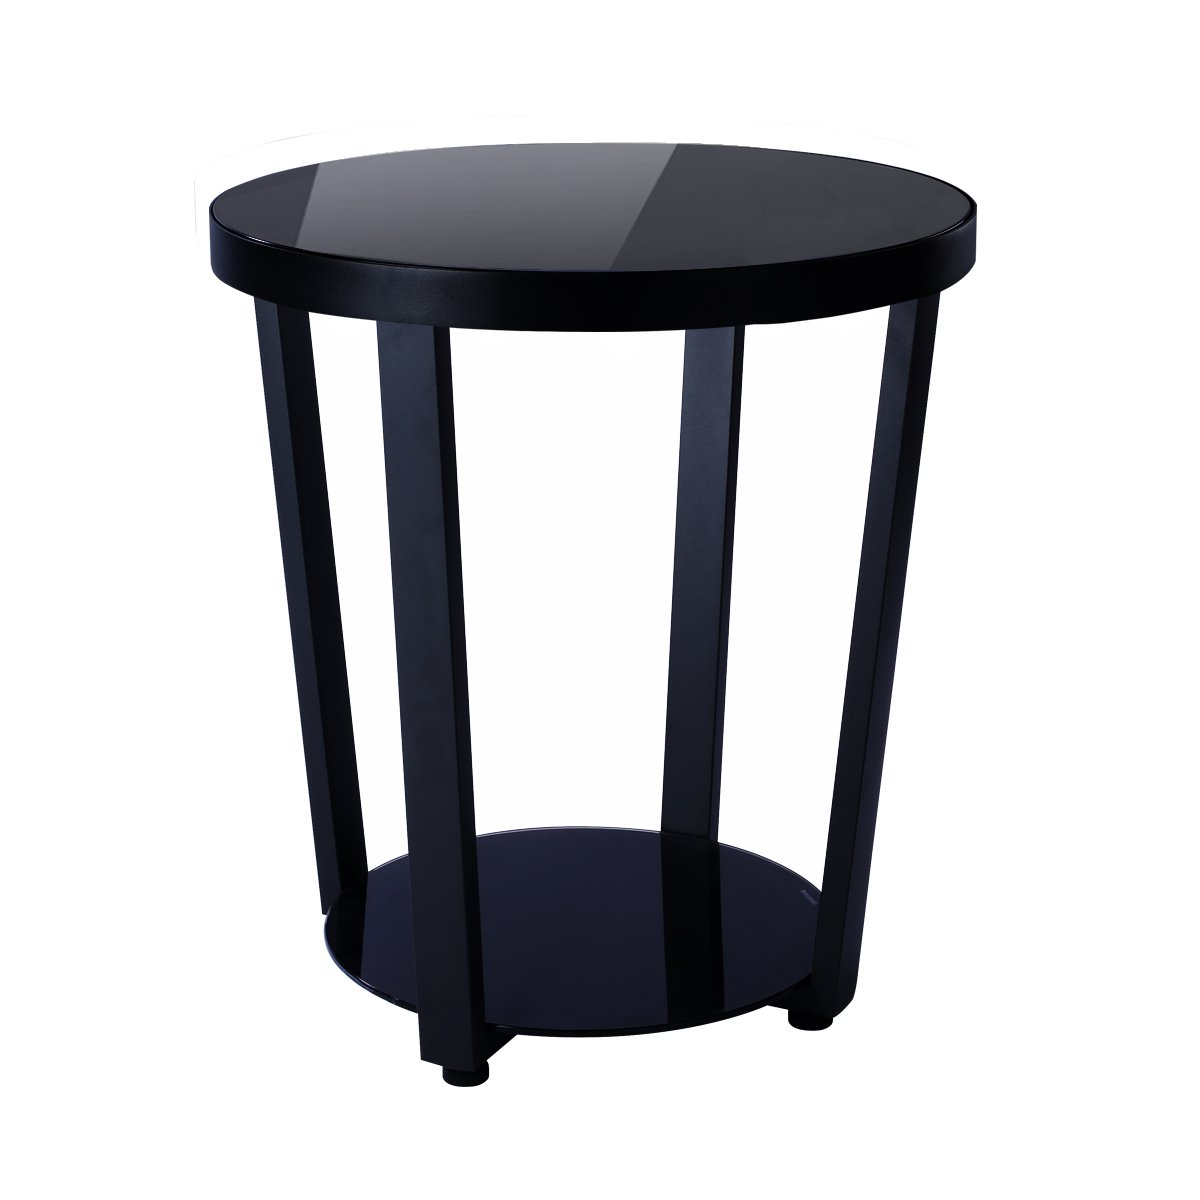 round glass top end table living room side cassie accent with coffee black kitchen dining narrow trestle legion furniture diy storage antique inlaid tables mimosa outdoor bunnings